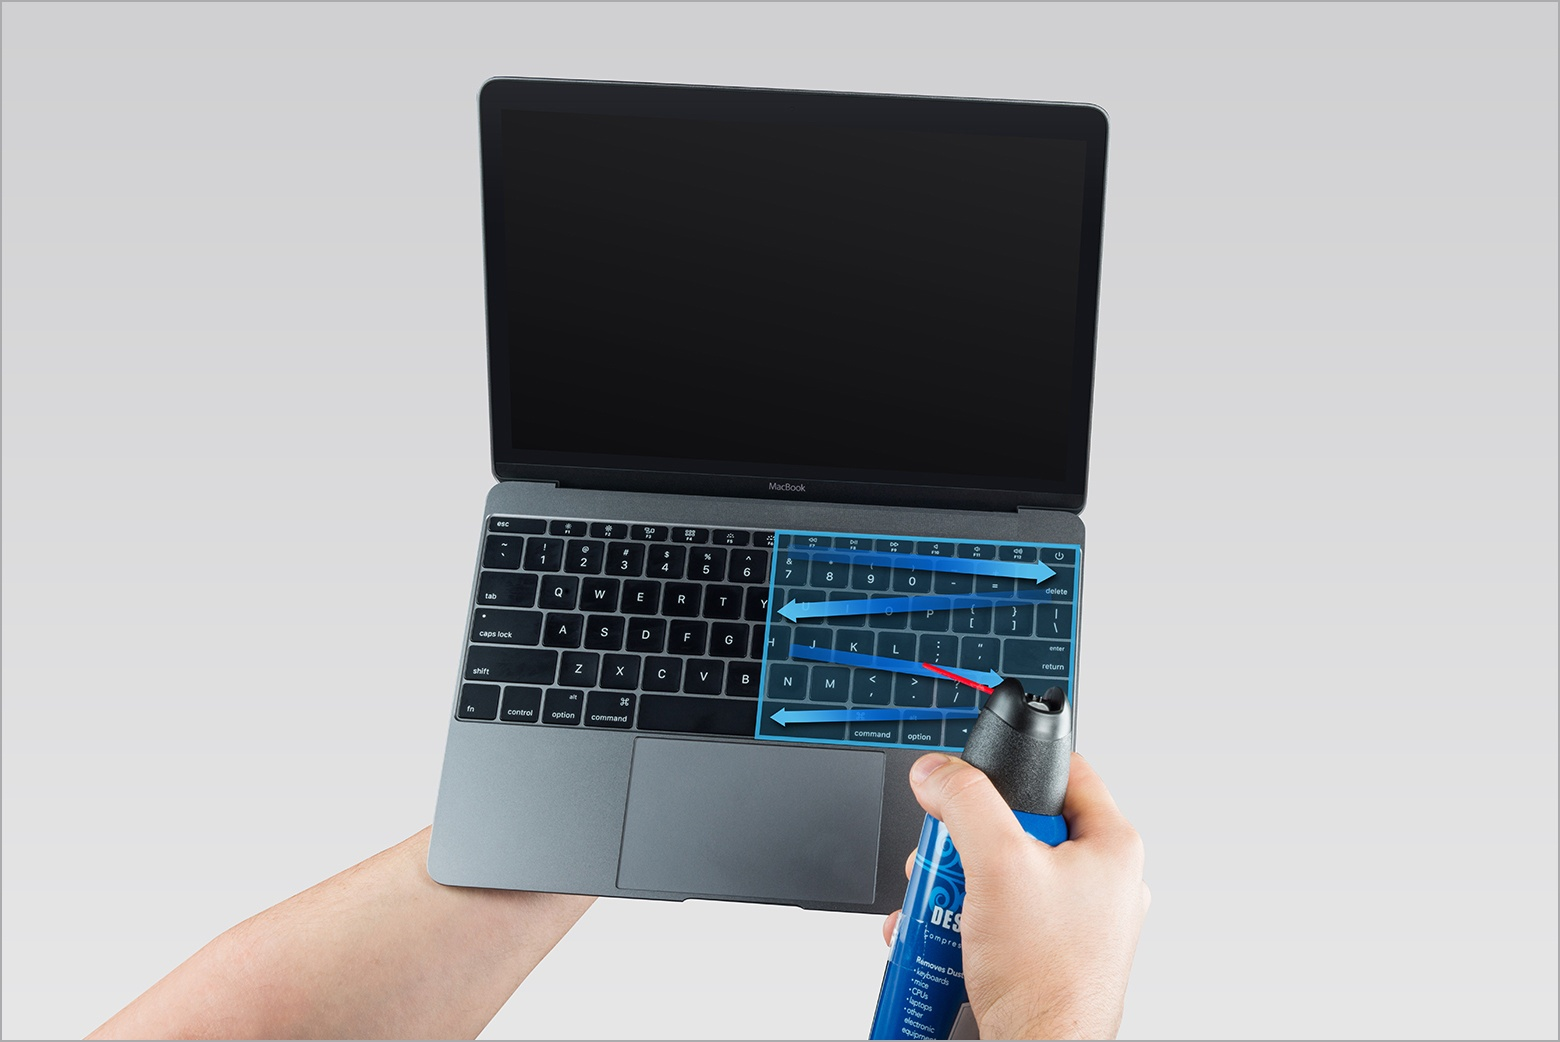 www.italiamac.it le soluzioni assurde di apple per pulire la tastiera dei nuovi macbook pro macbook cleaning keyboard front clean right Le soluzioni assurde di Apple per pulire la tastiera dei nuovi MacBook Pro